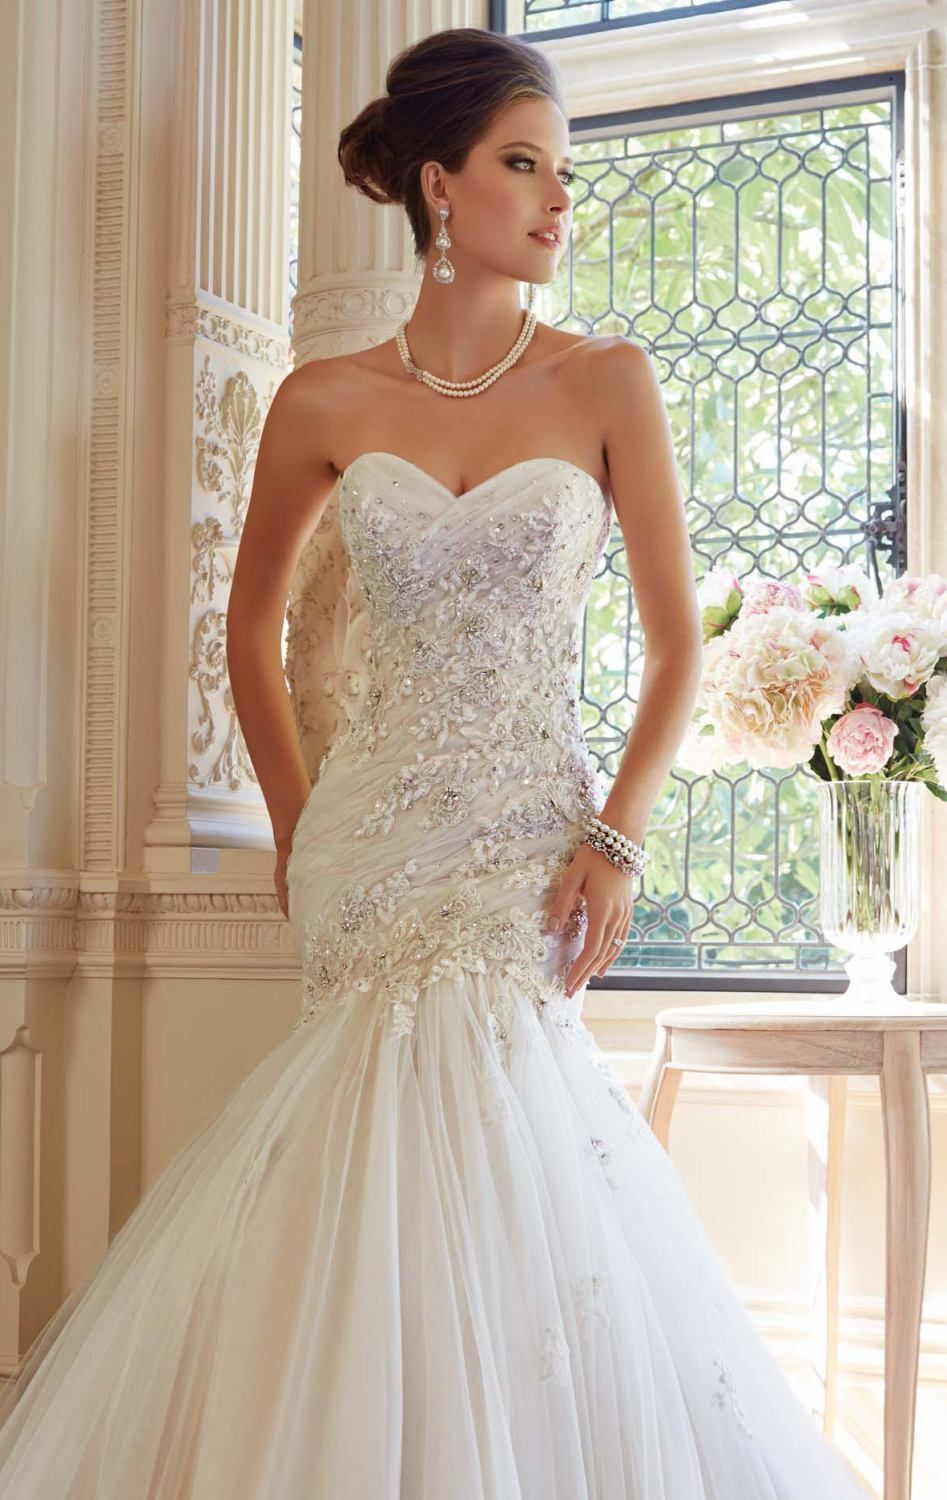 Embellished Strapless Gown by Sophia Tolli   Wedding Dresses ...